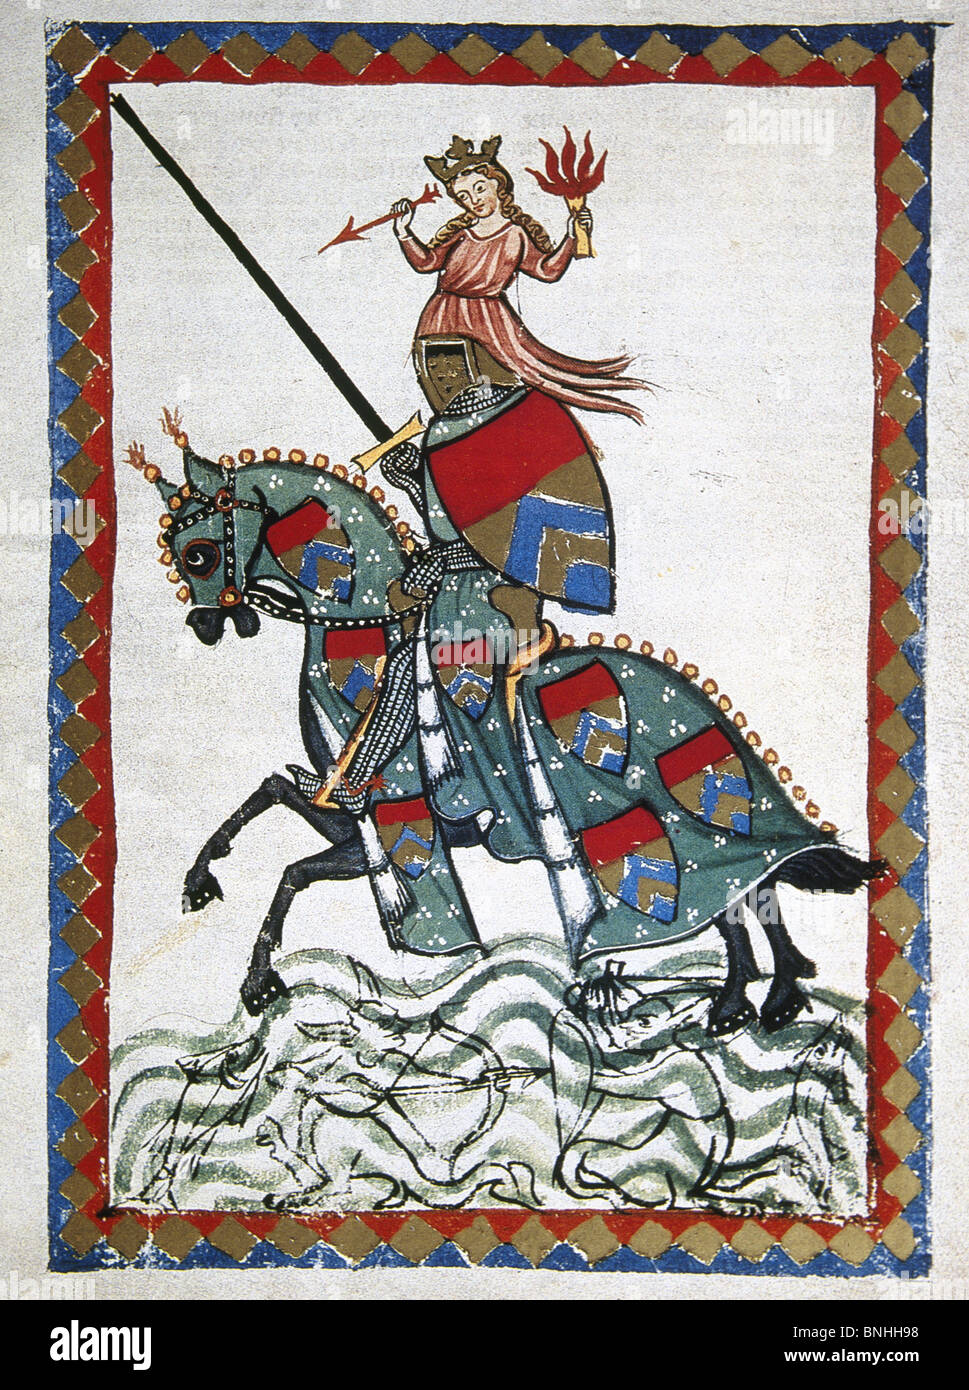 Ulrich von Liechtenstein (1200–1278) , medieval nobleman, knight, politician, and minnesanger. Ulrich on a trip. - Stock Image